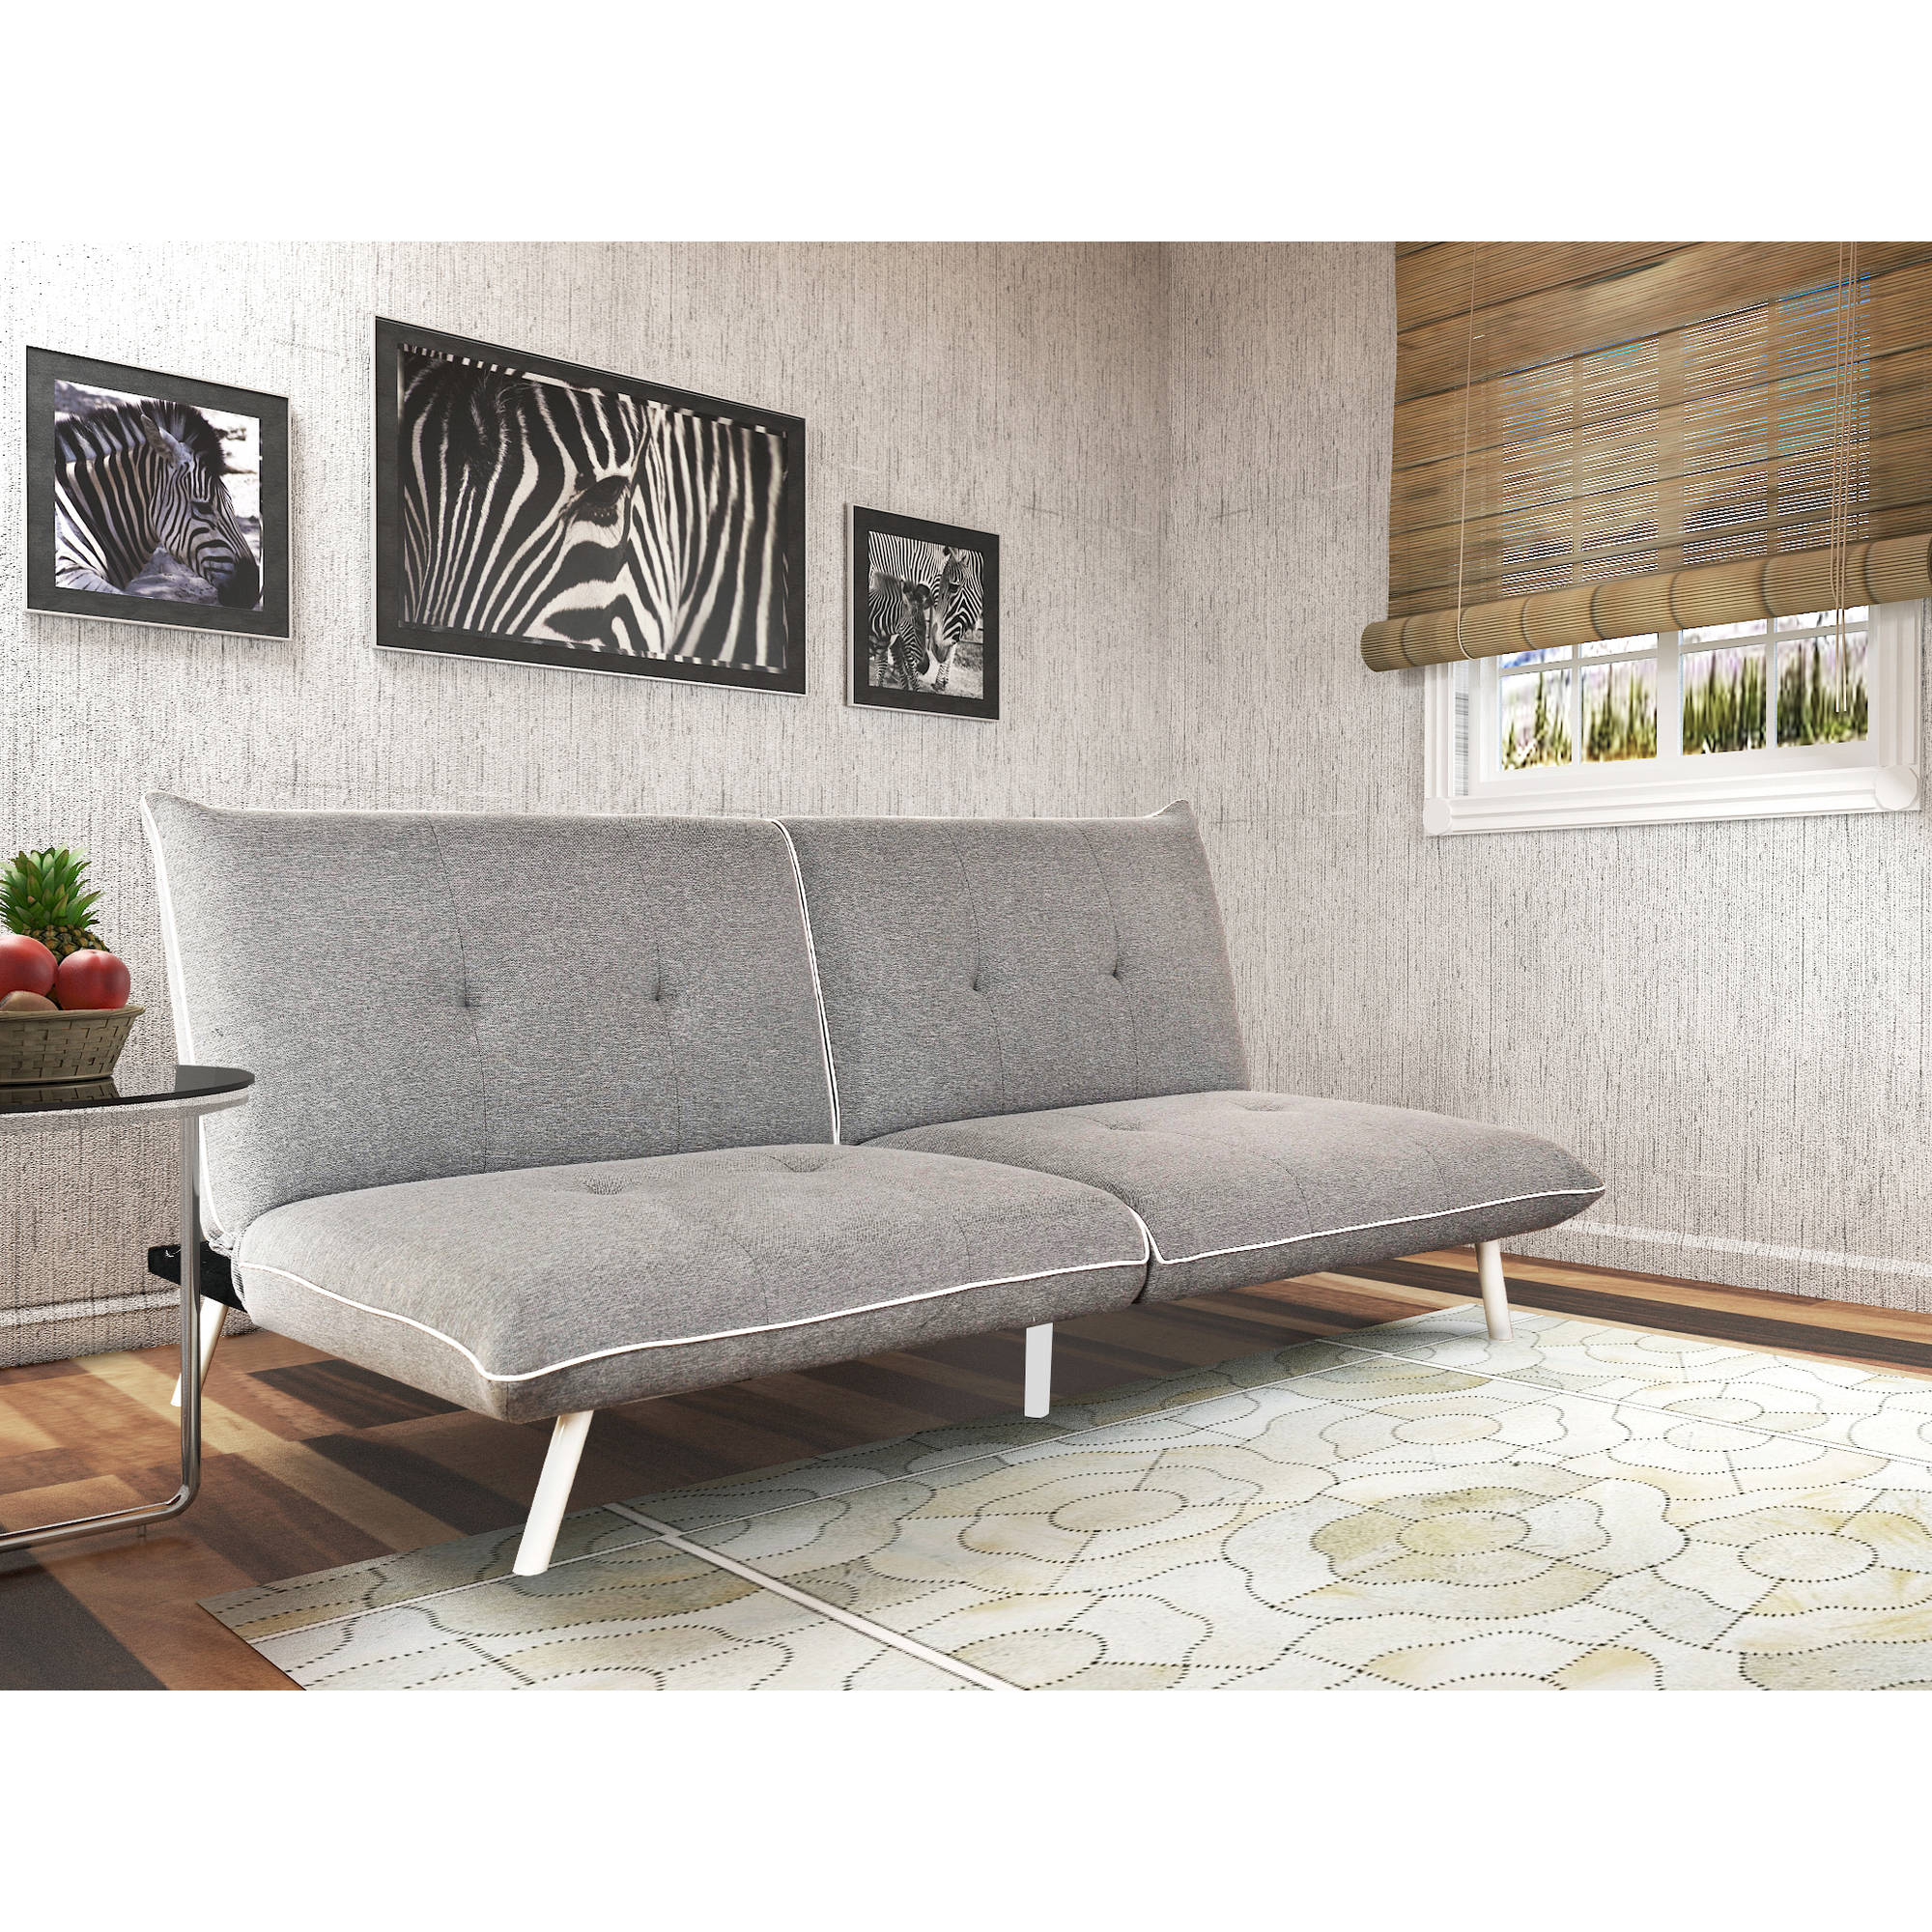 Mainstays Extra Large Futon With Contrast Piping Grey White